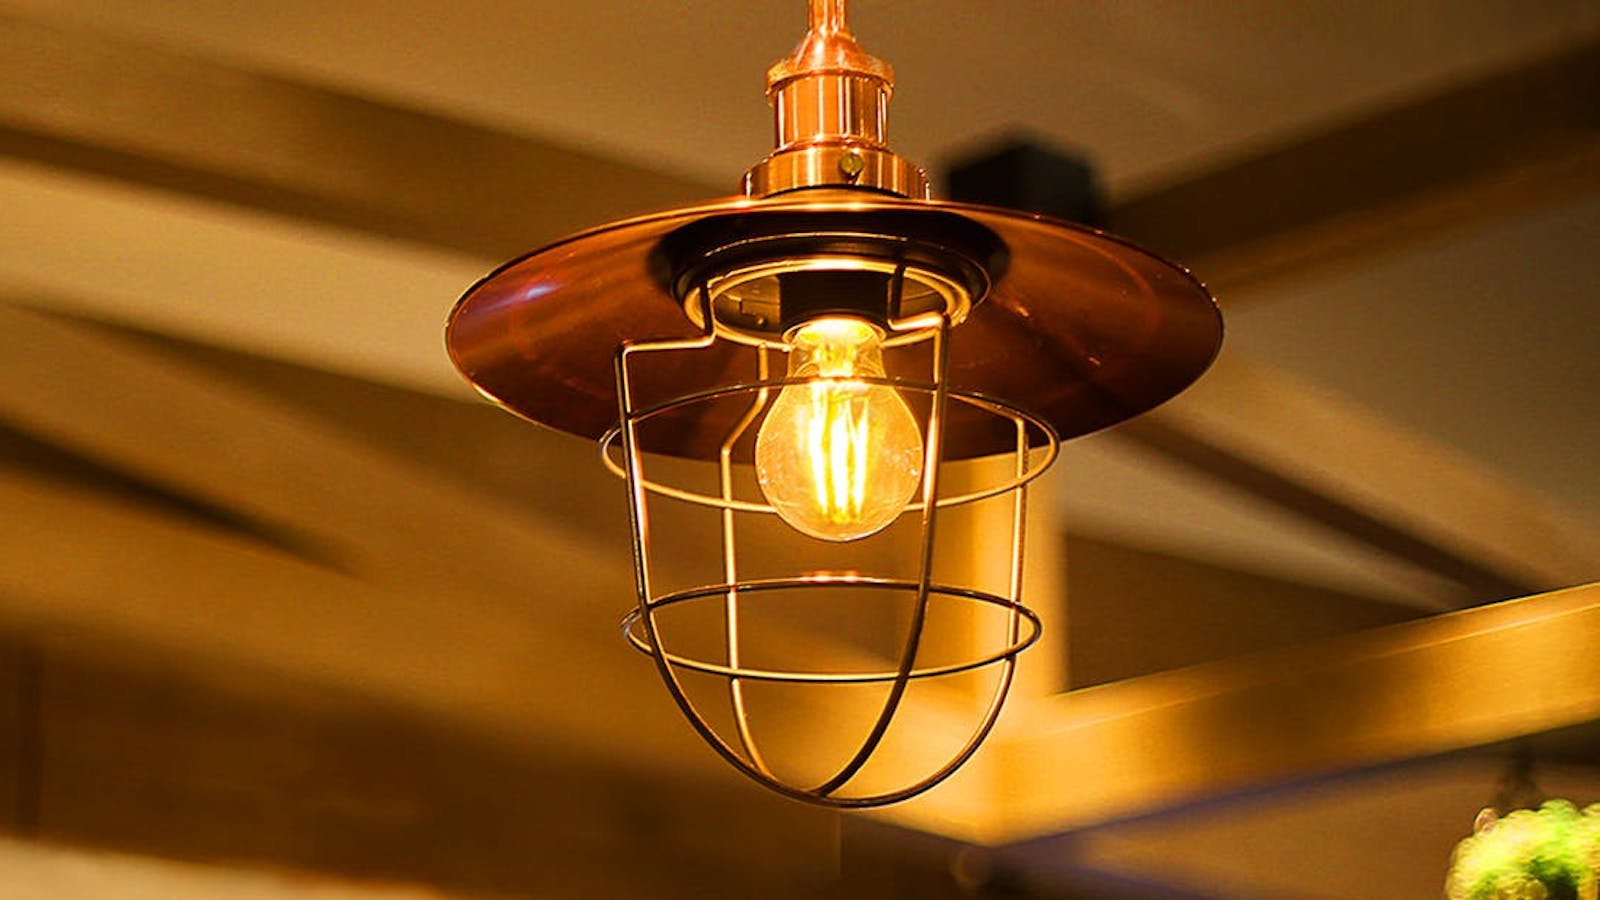 TP-Link Kasa Smart Bulb Warm Amber Light lets you set a vintage mood